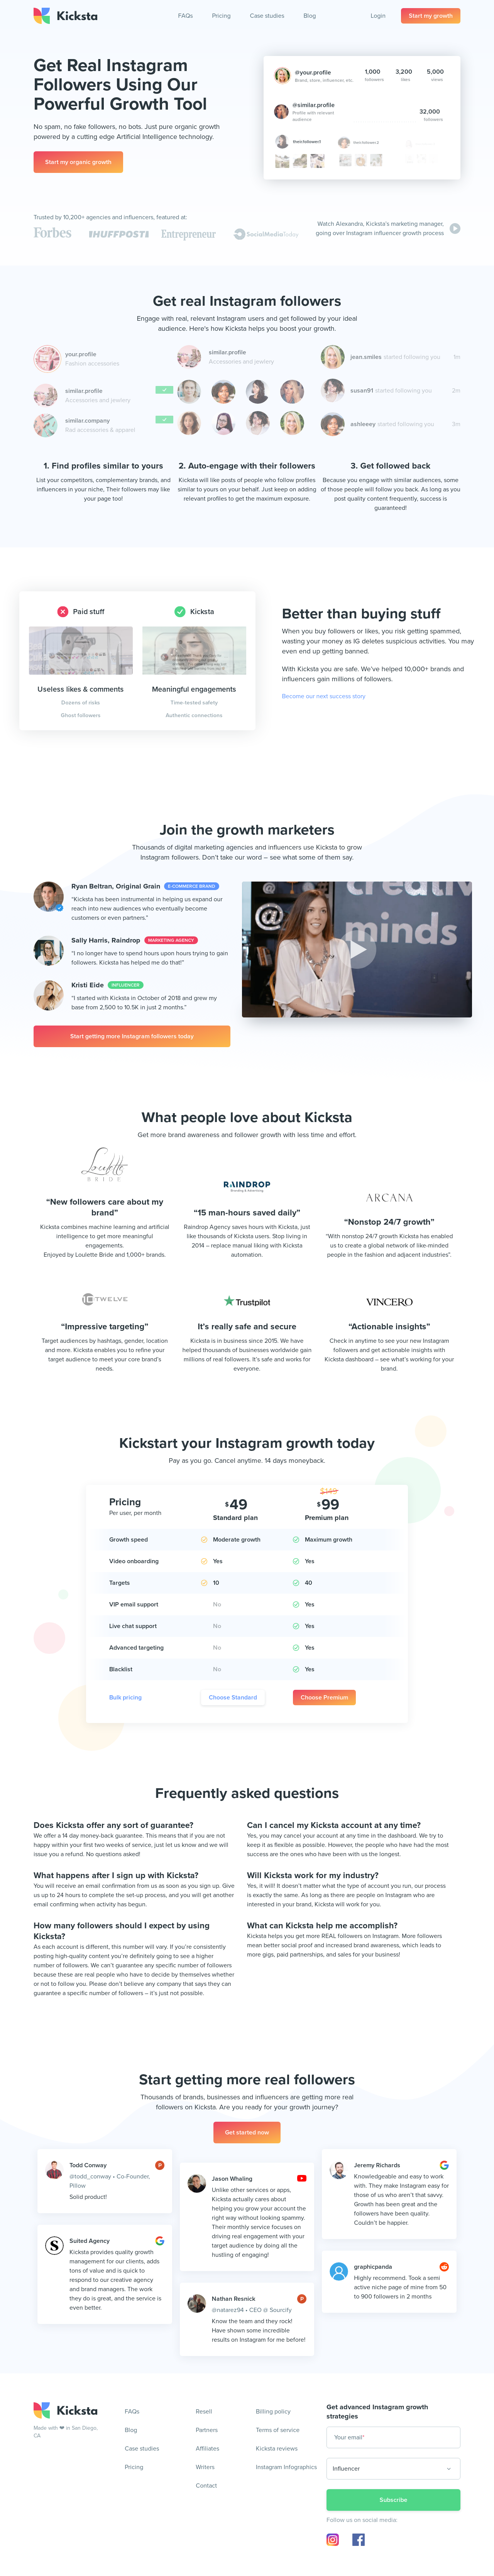 Example of Design for Online Communities, Mobile Landing Page by kicksta.co | Mobile Landing Page Design